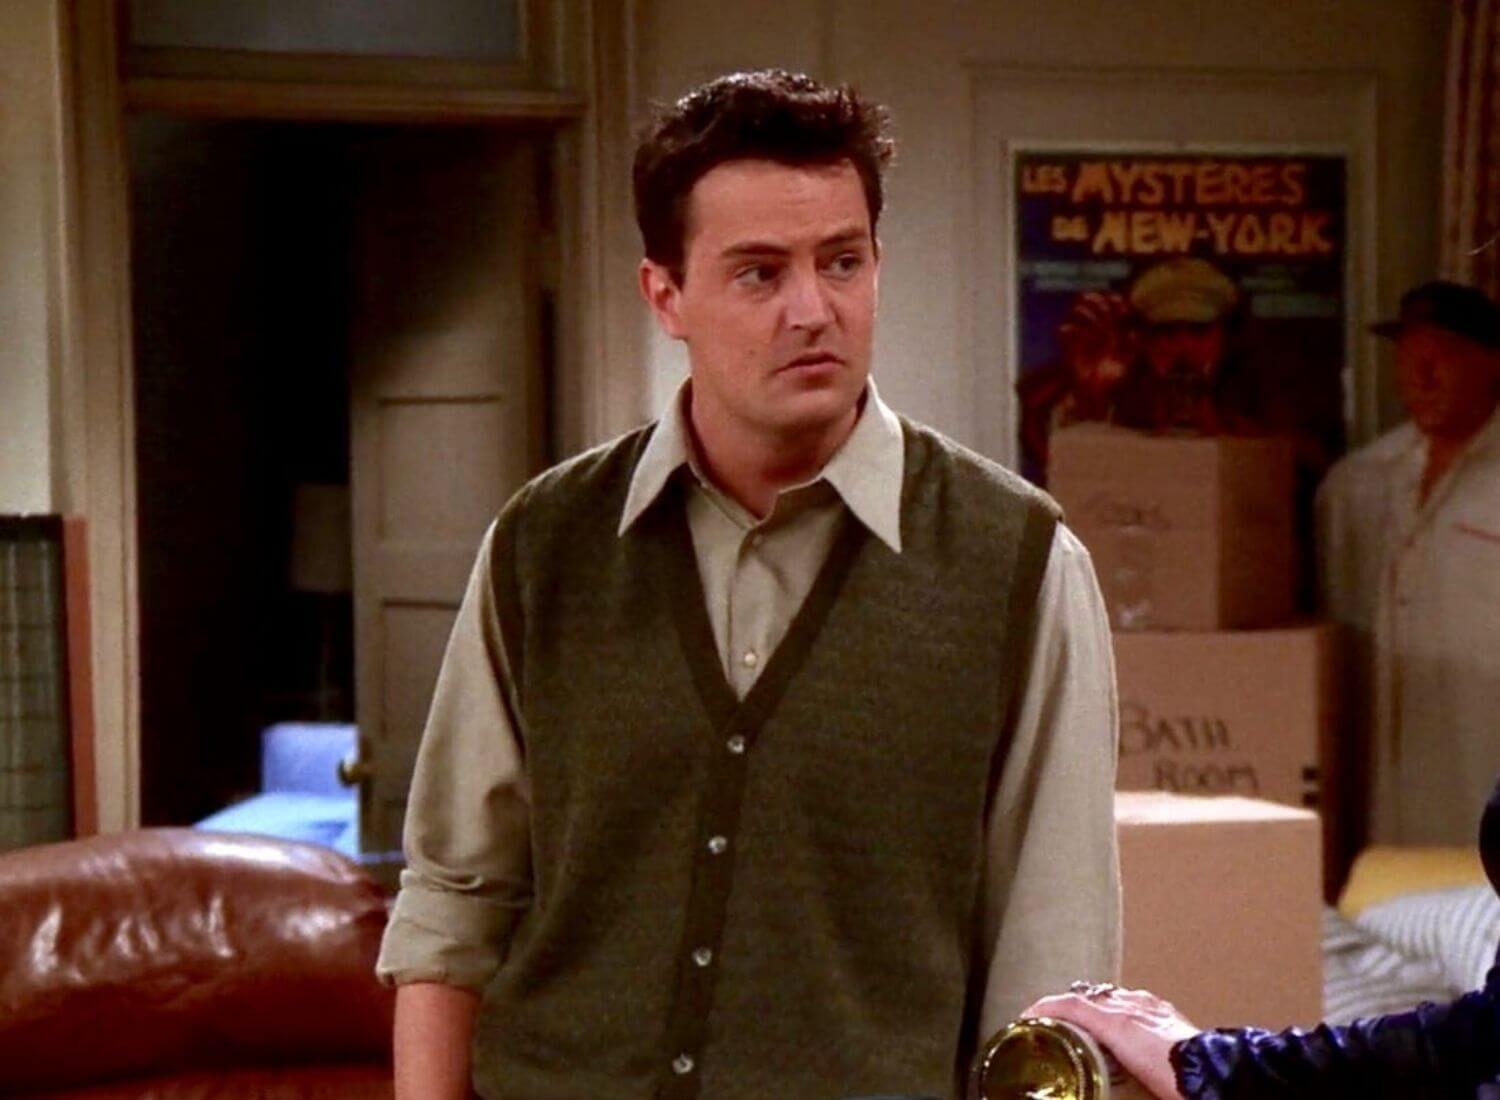 Times When Chandler Bing Was At His Sarcastic Best